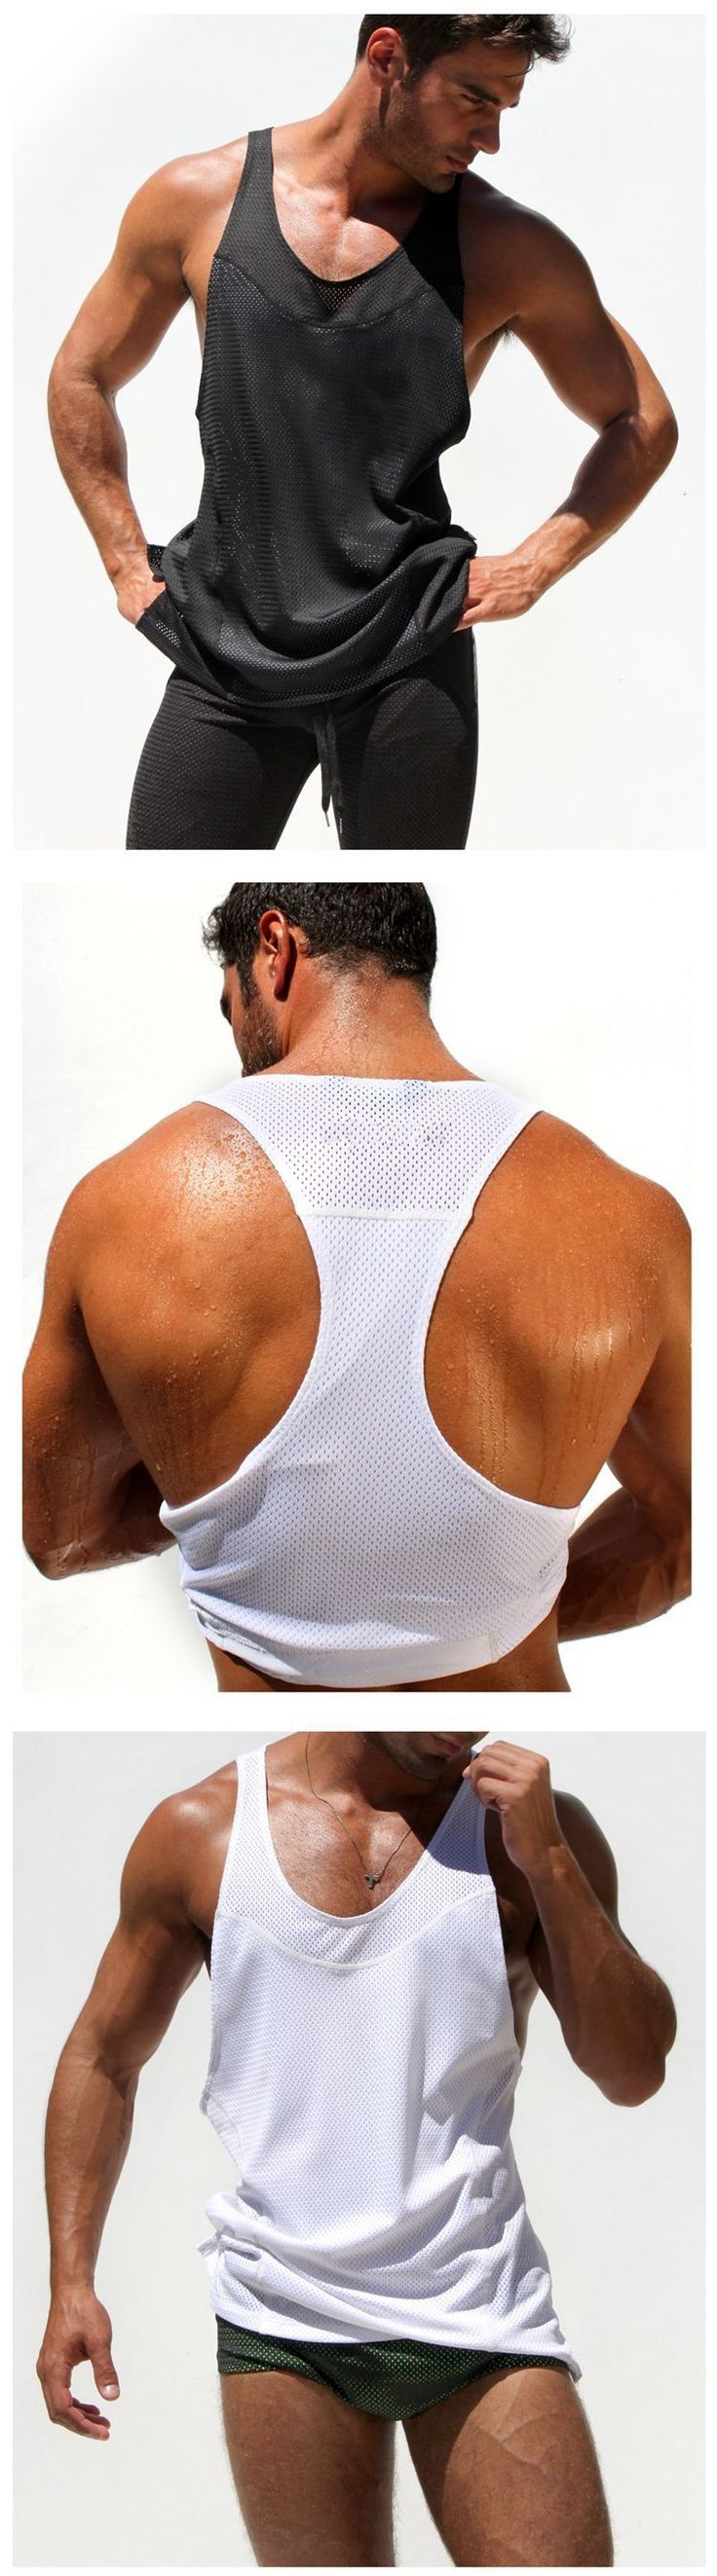 New Men's Extreme Racer Tees Vigor Tank tops Low Cut Arm Holes Vest bodybuilding On Sale Free Shipping